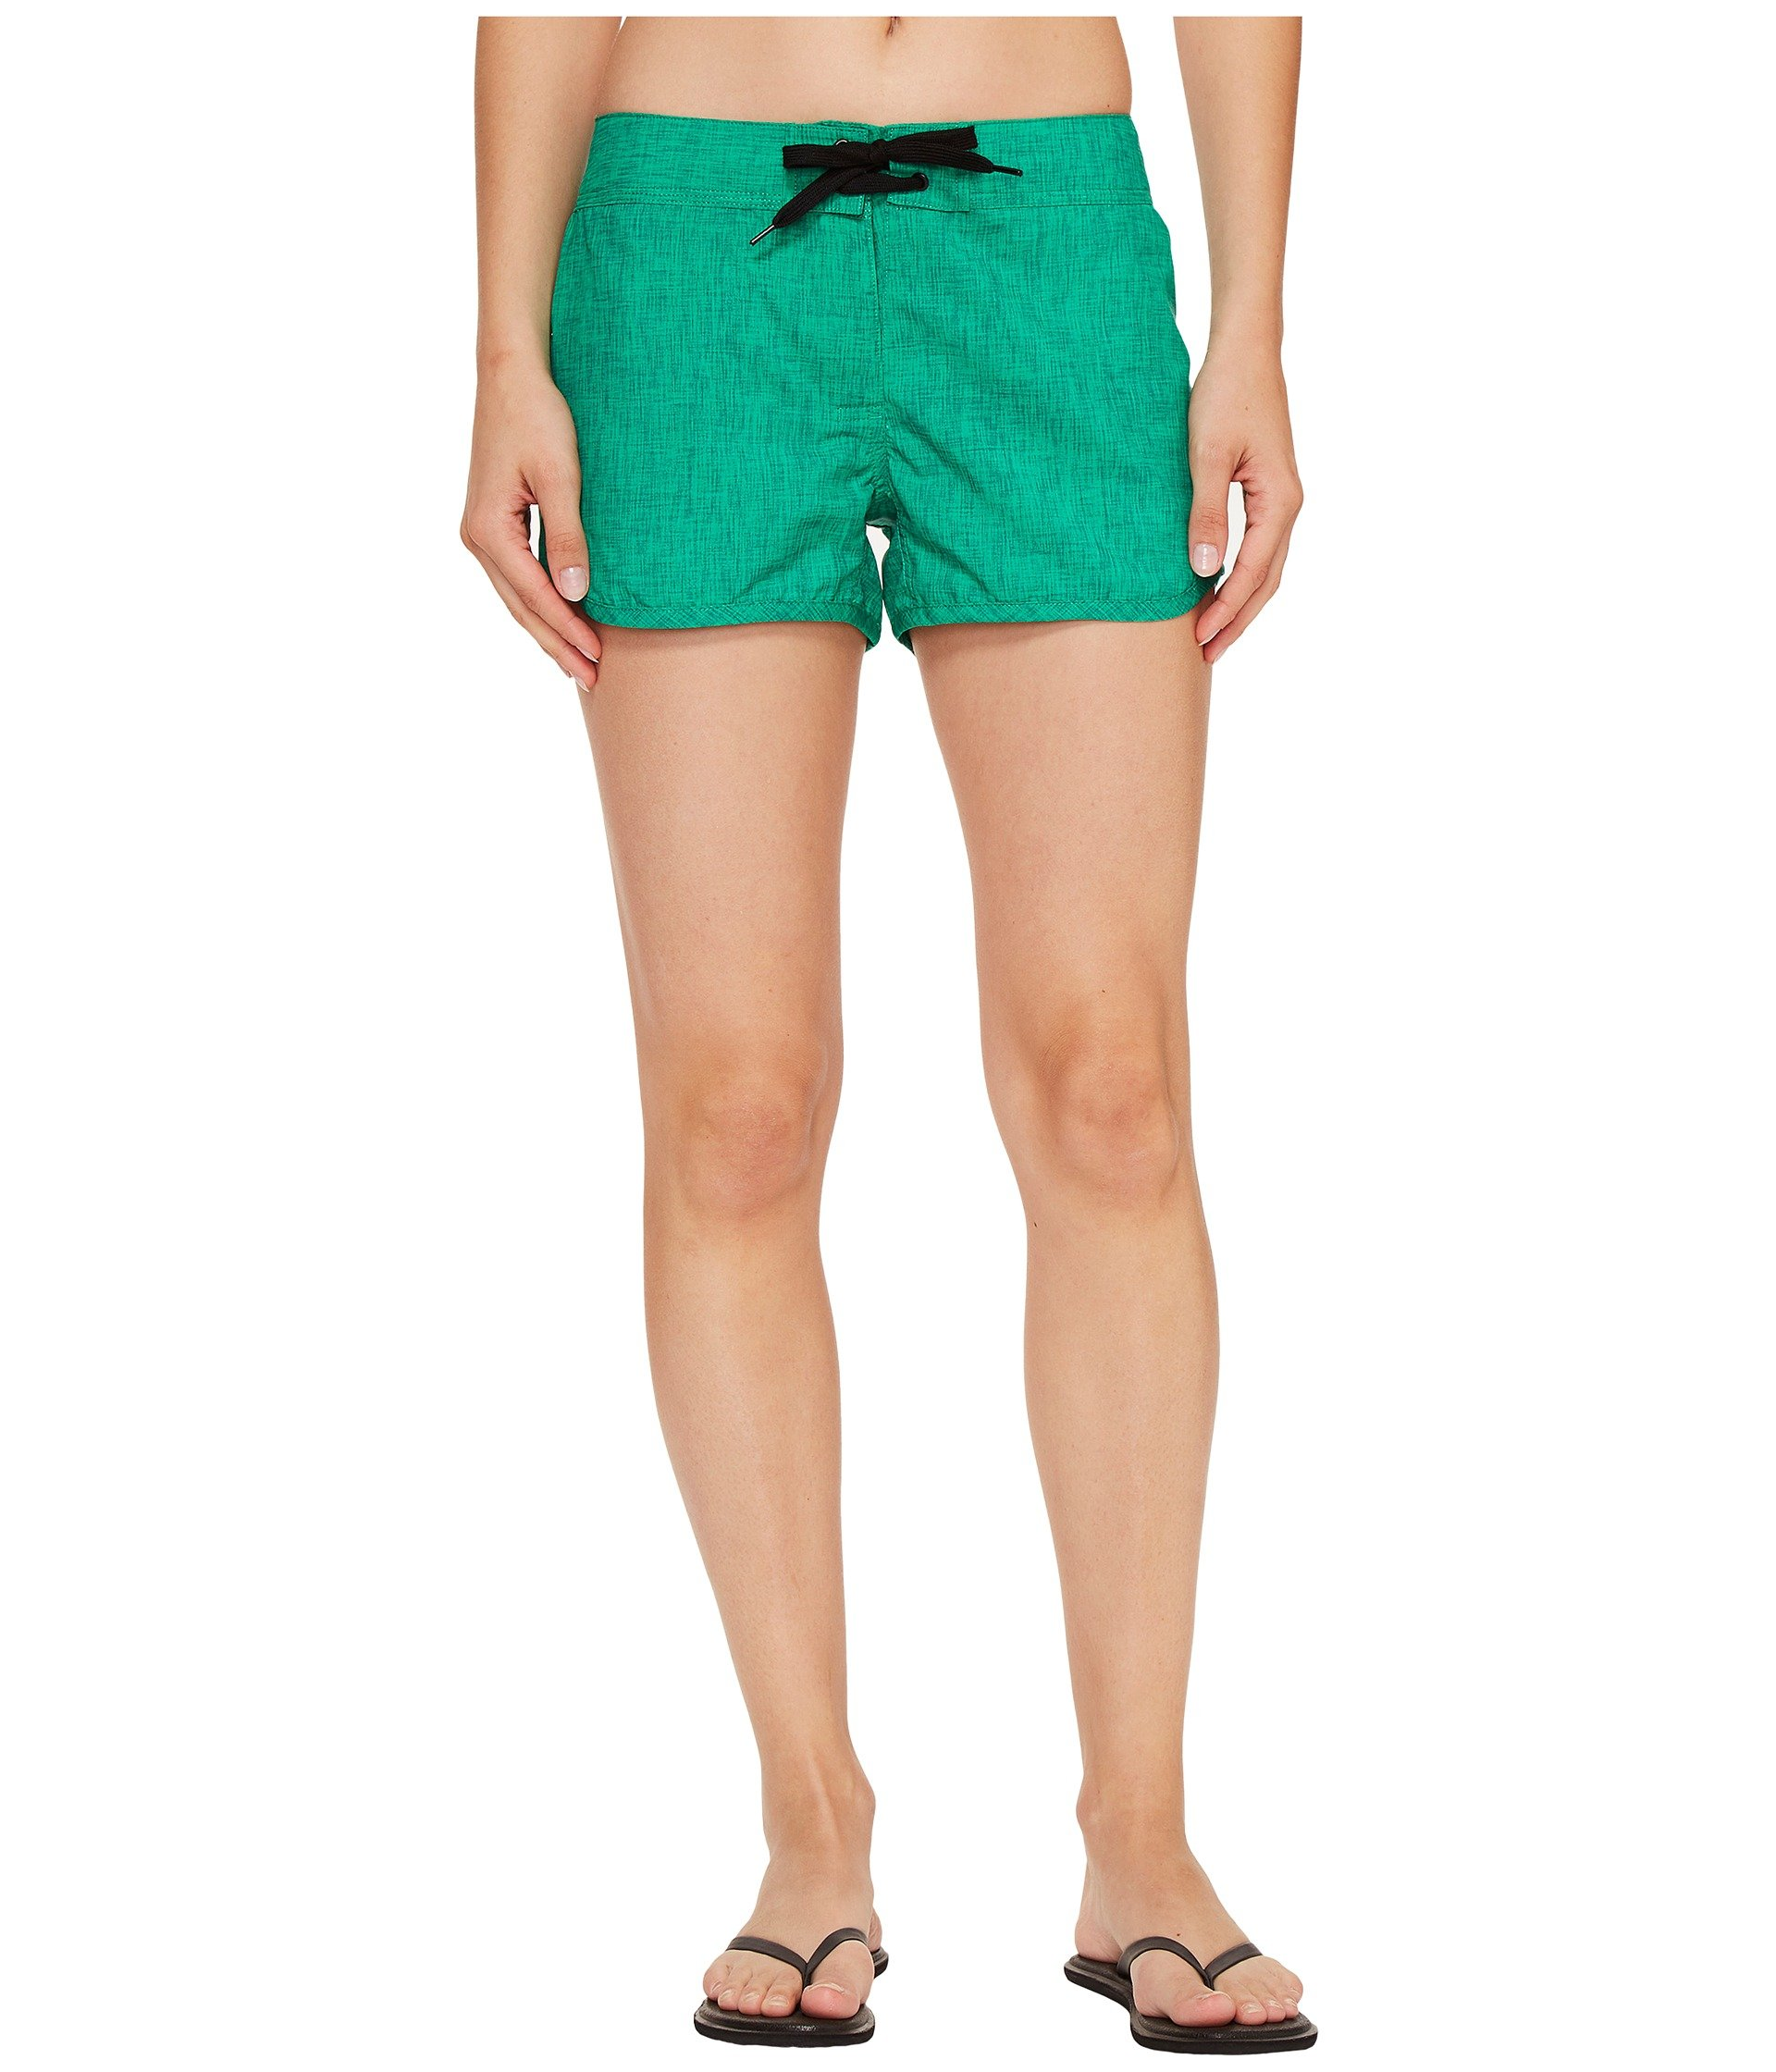 Bikini para Mujer adidas Outdoor All Outdoor Voyager Shorts  + adidas en VeoyCompro.net